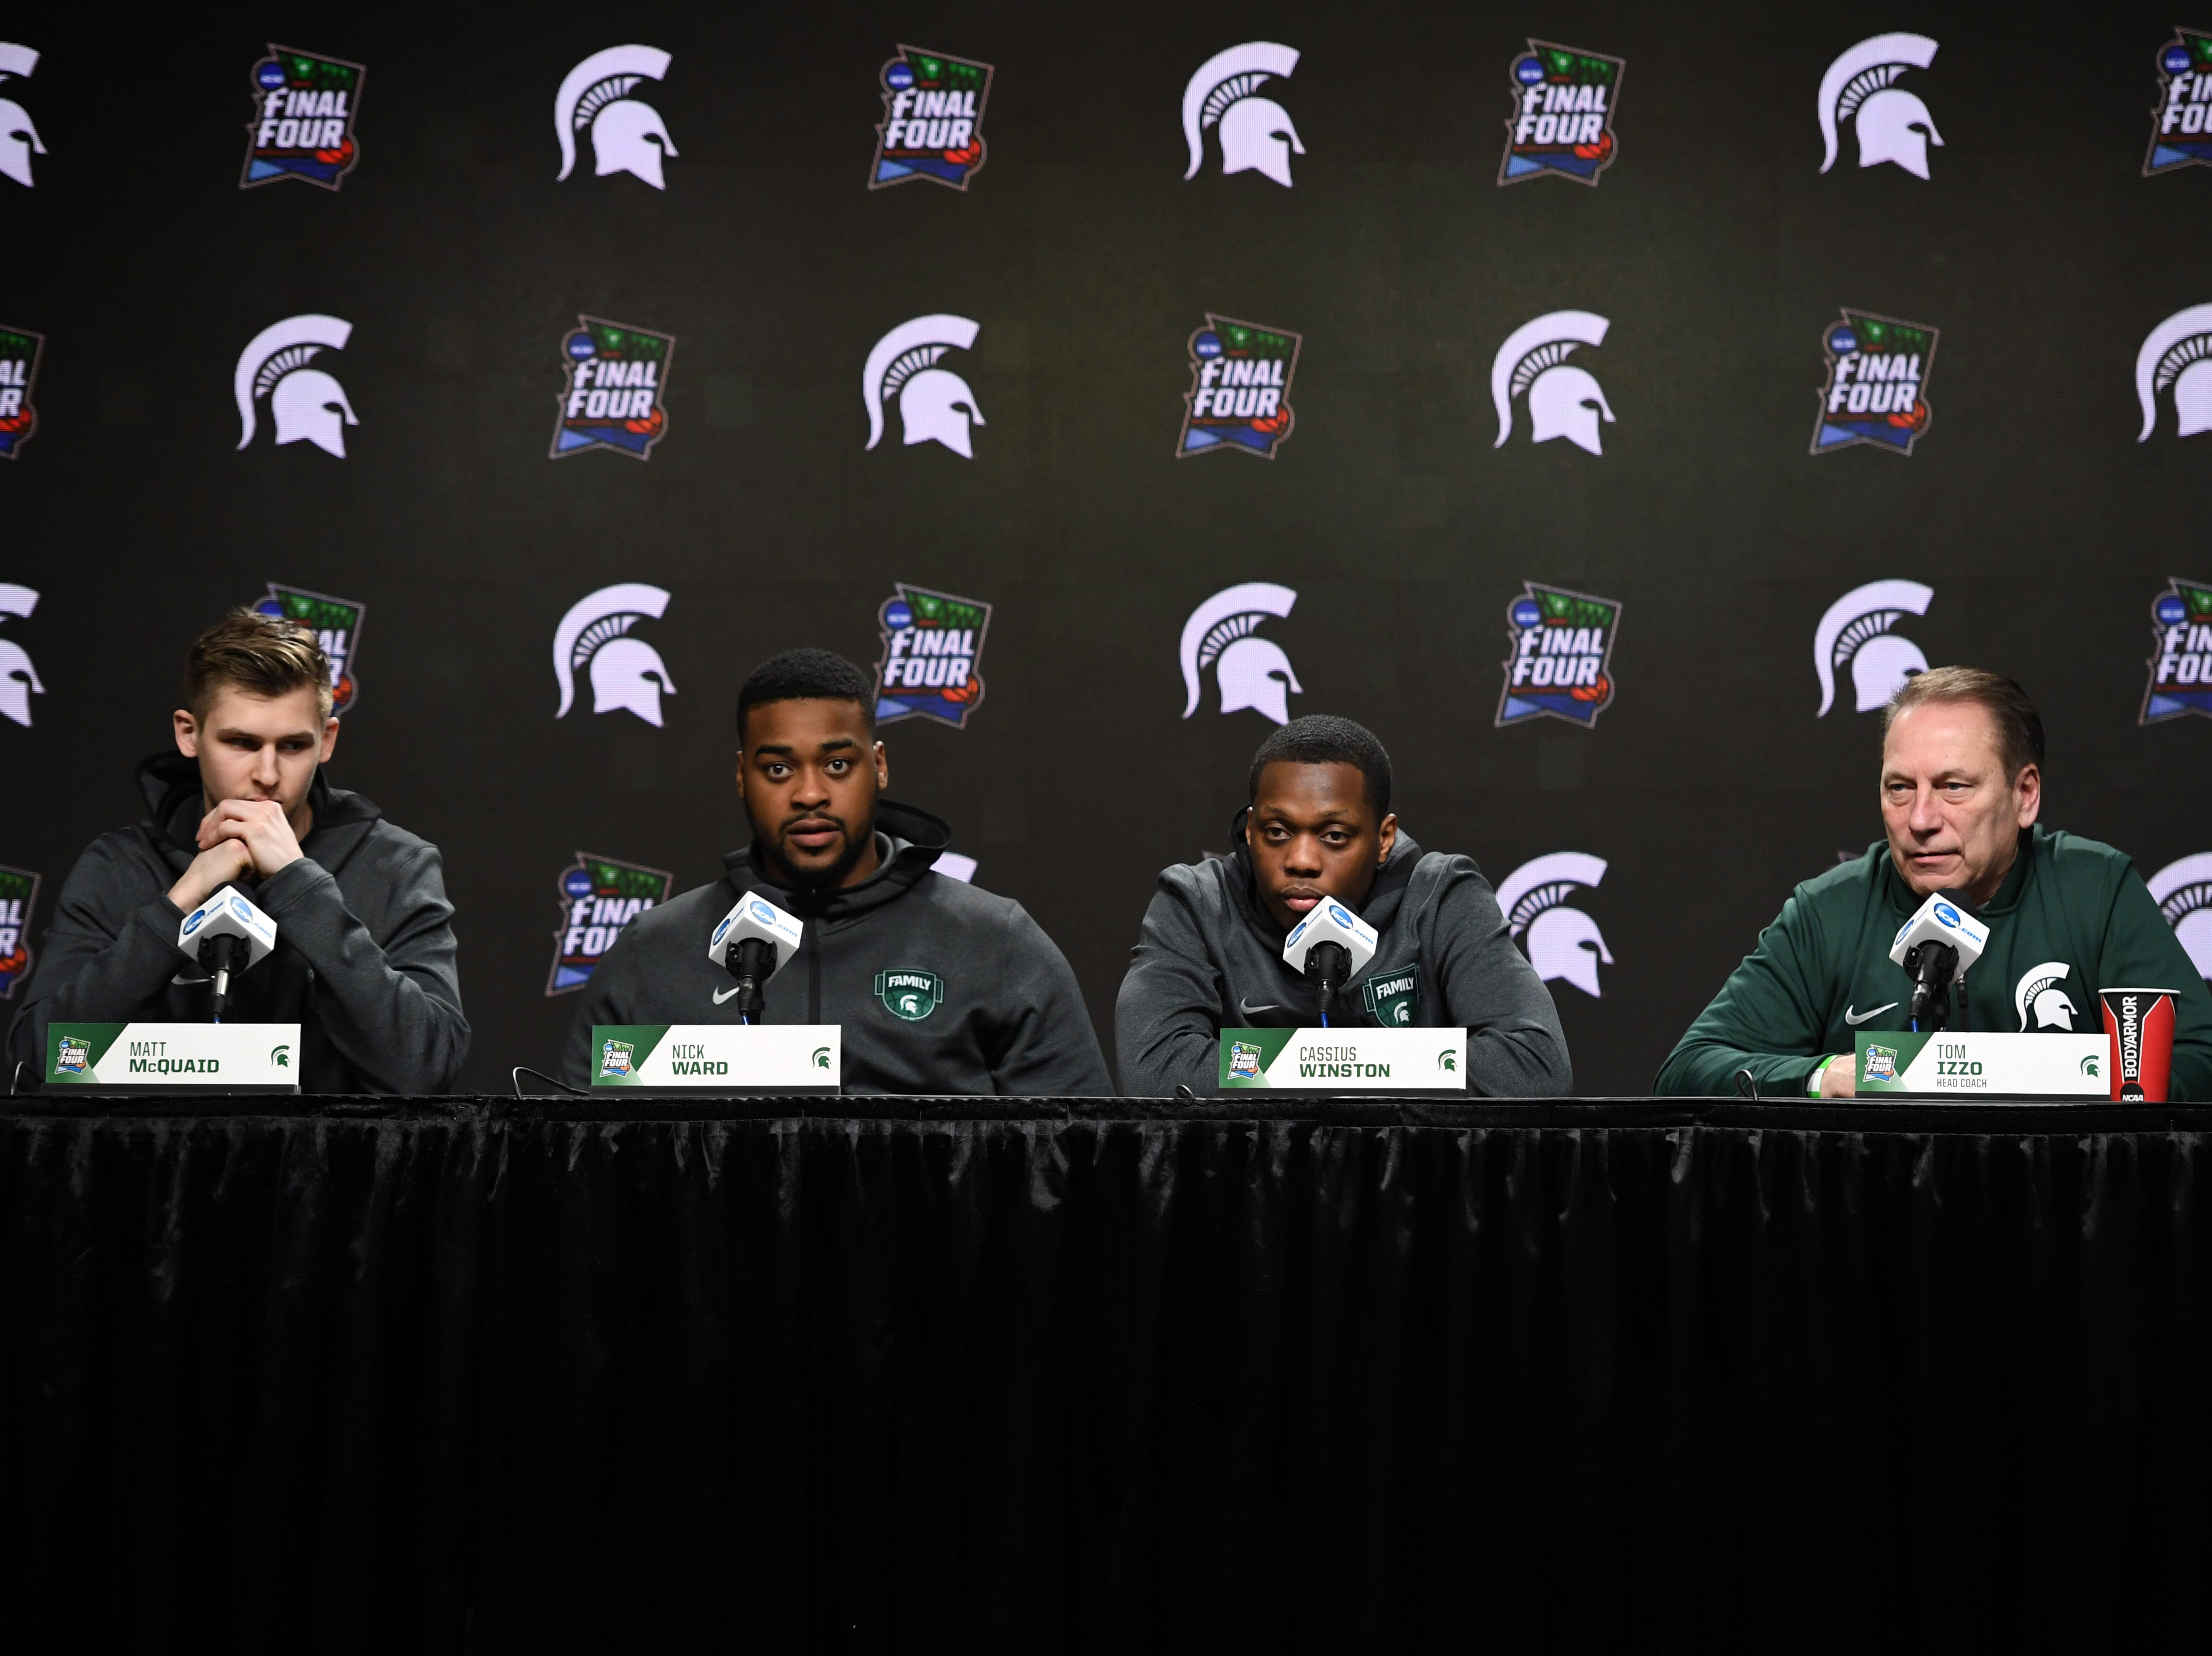 Apr 5, 2019; Minneapolis, MN, USA; Michigan State Spartans head coach Tom Izzo and guard Matt McQuaid (20) forward Nick Ward (44) and guard Cassius Winston (5) speaks during a press conference before practice for the 2019 men's Final Four at US Bank Stadium. Mandatory Credit: Shanna Lockwood-USA TODAY Sports